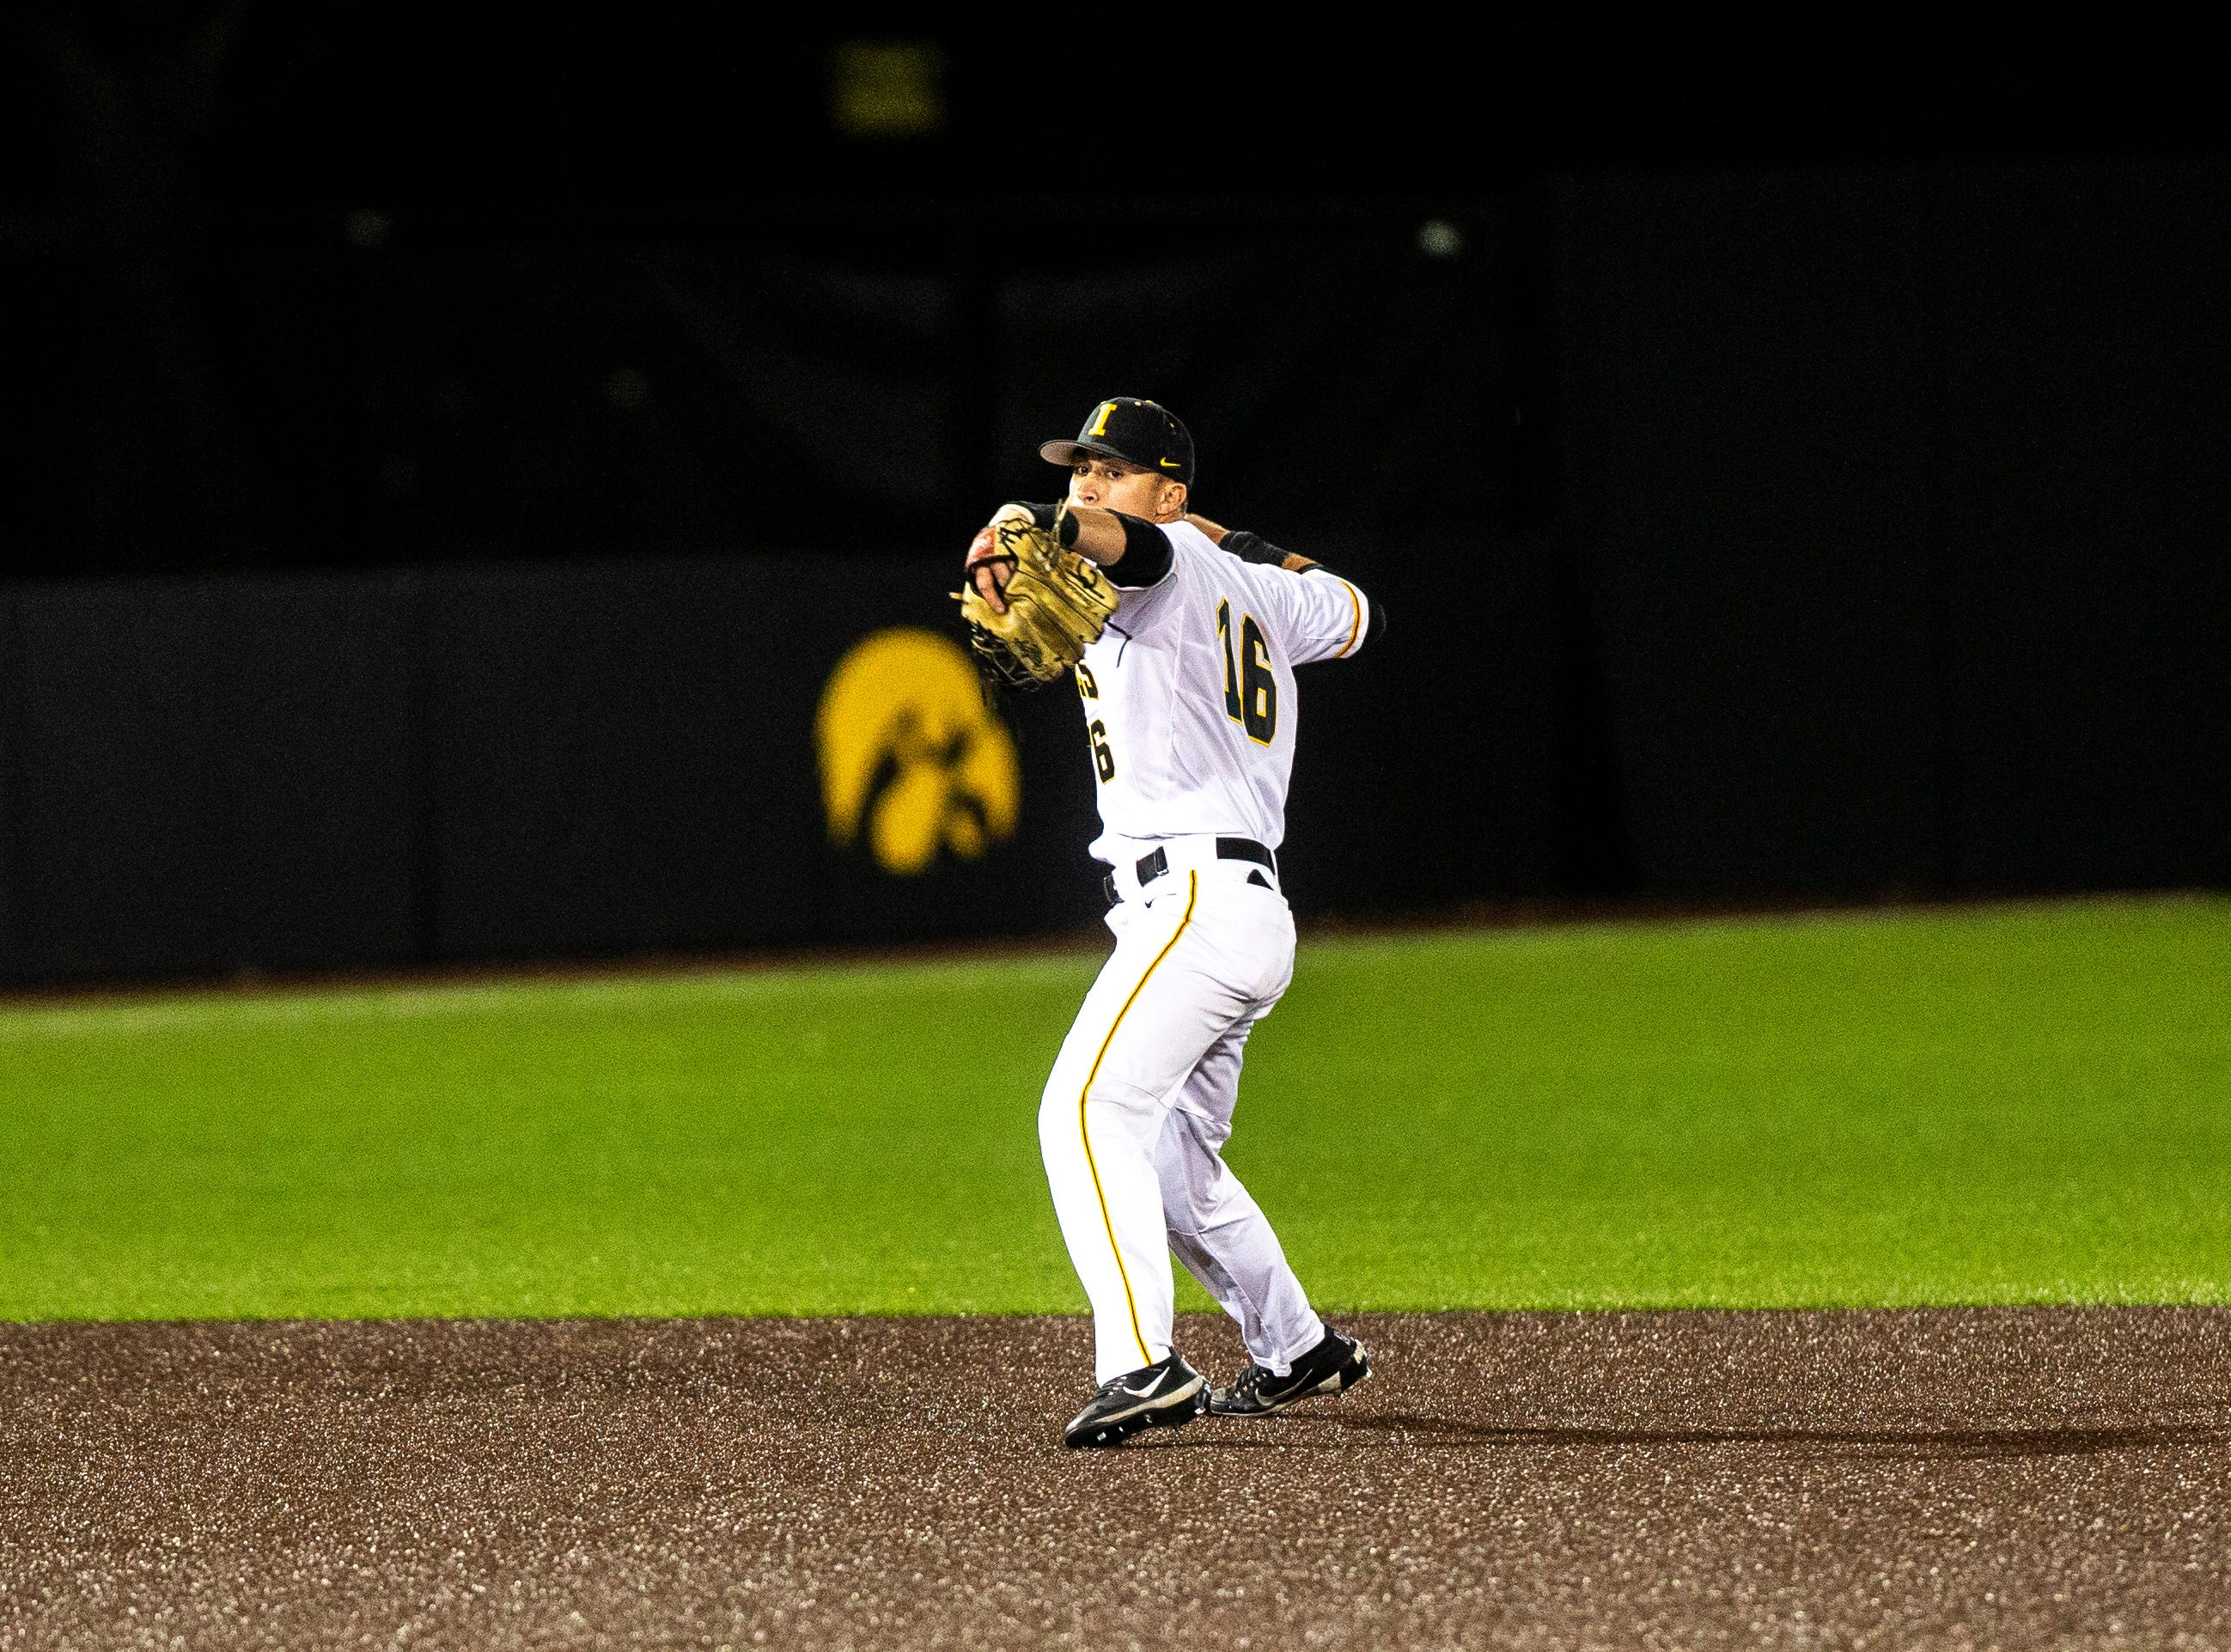 Iowa's Tanner Wetrich (16) throws a ball to first during NCAA non conference baseball game, Friday, May 3, 2019, at Duane Banks Field in Iowa City, Iowa.